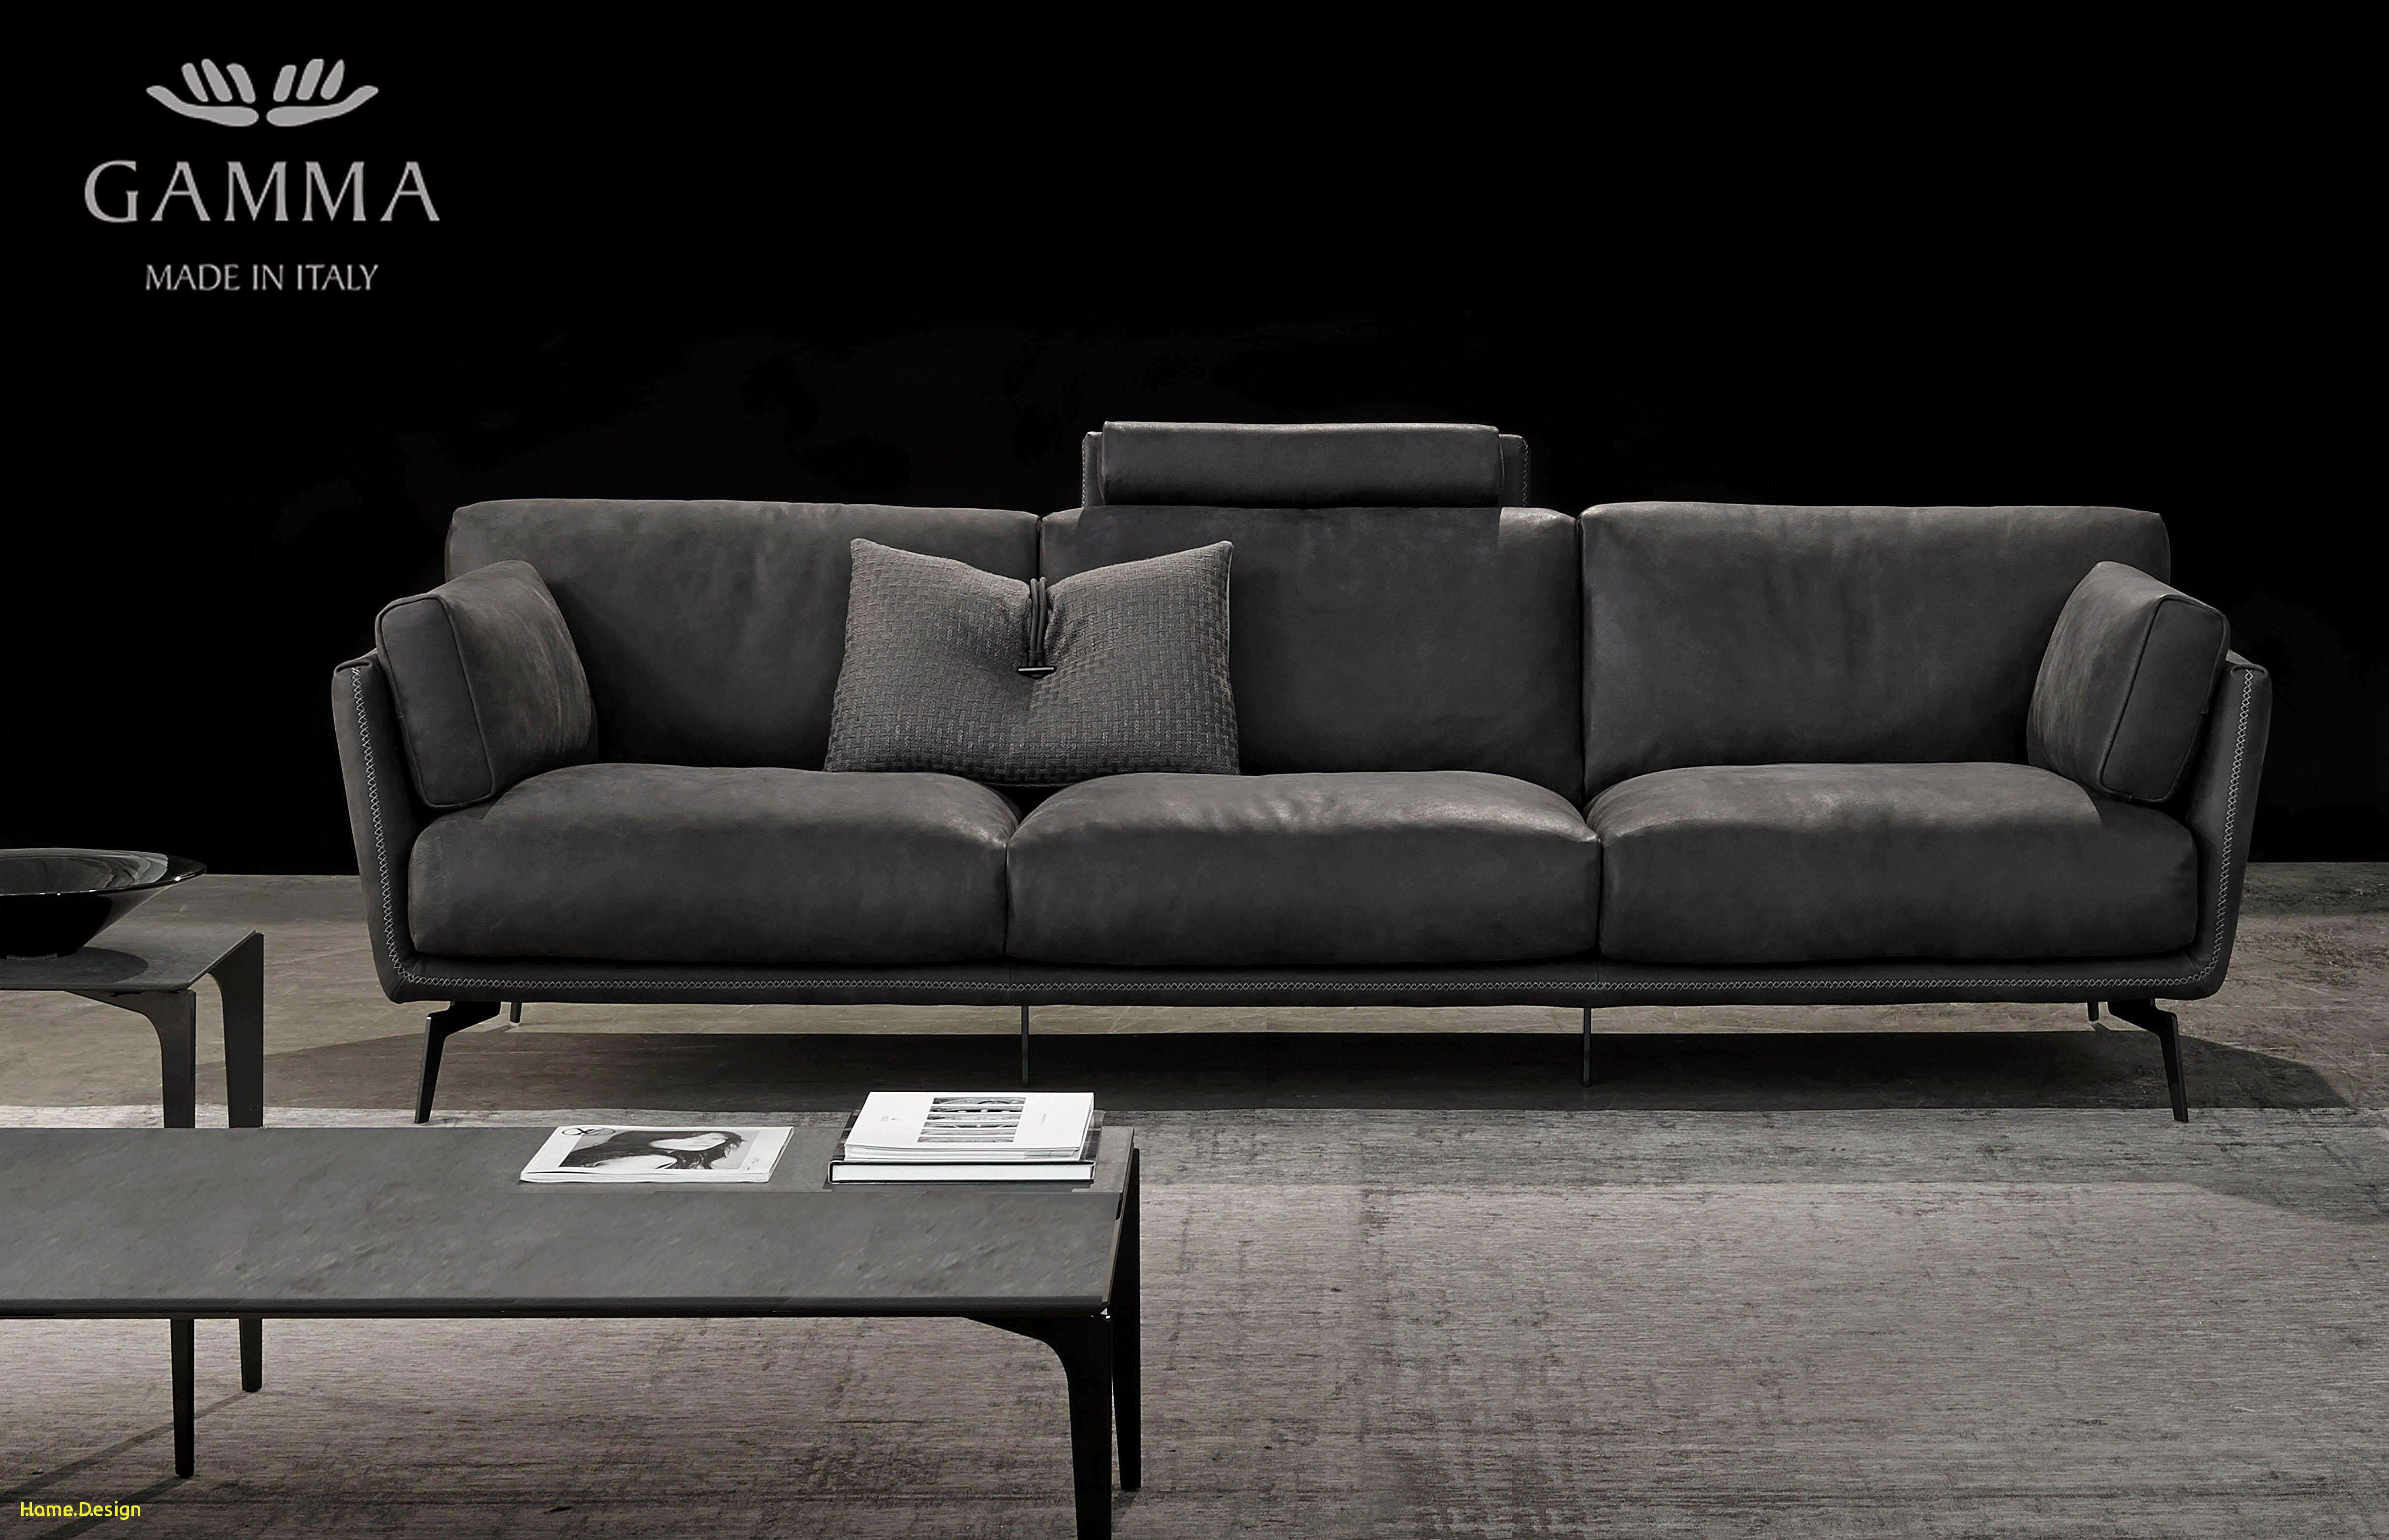 Luxury Italian Leather Sofa Brands Homedesign Homedecor Homediy Https Klikhomedesign Sectional Sofa With Chaise Sofa Decor Cheap Living Room Furniture